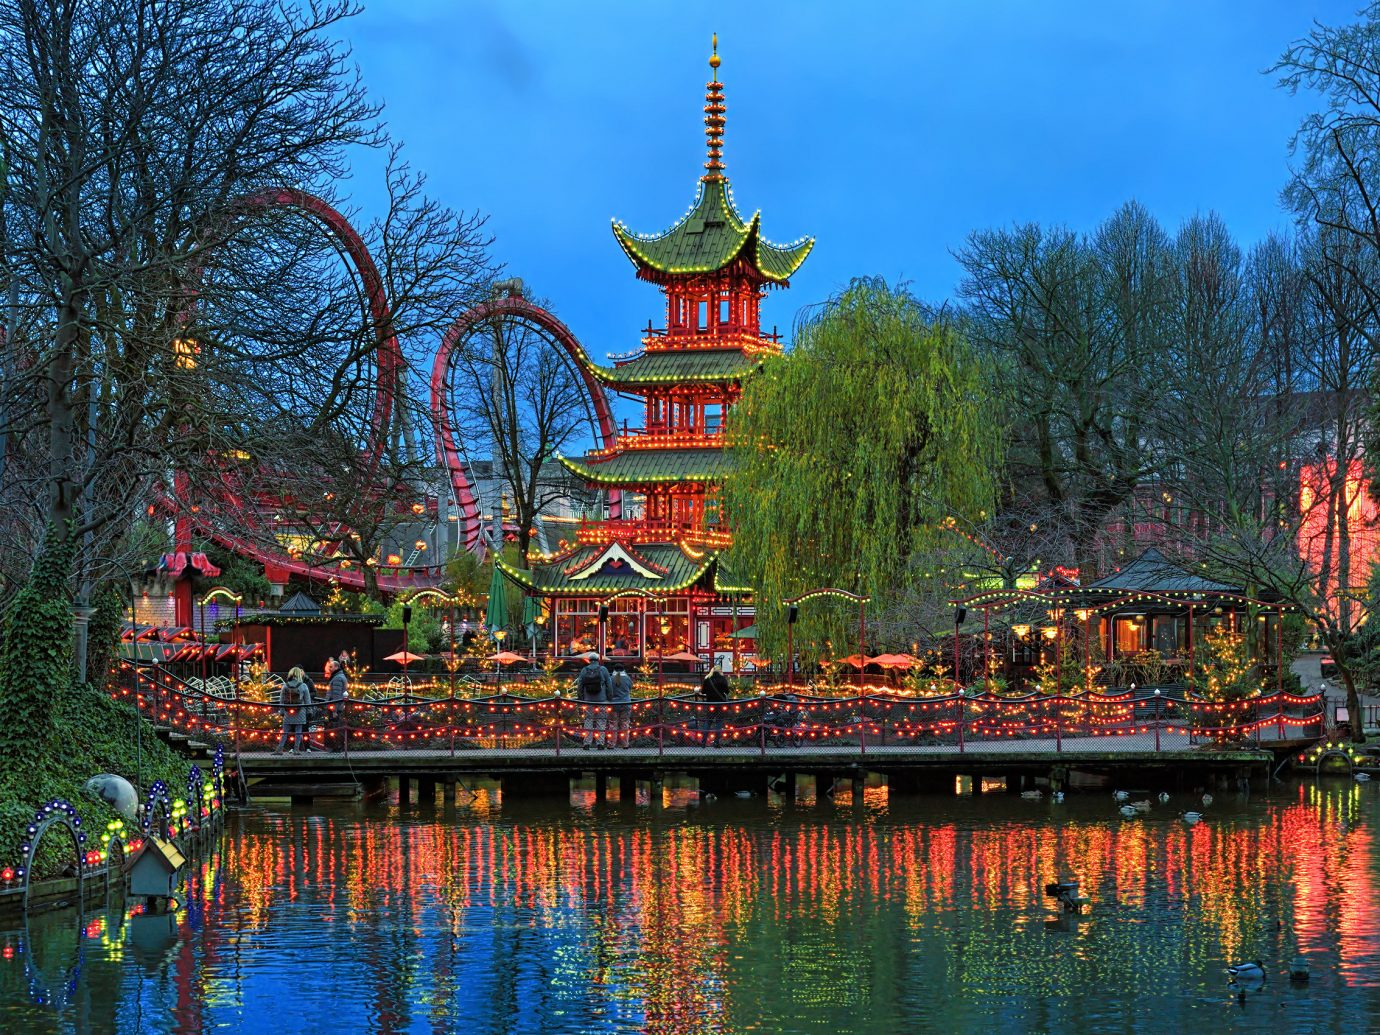 Copenhagen Denmark Trip Ideas Nature chinese architecture reflection landmark water pagoda leaf waterway tourist attraction tree plant sky leisure tourism Lake amusement park landscape evening City pond autumn water feature park botanical garden tower world computer wallpaper